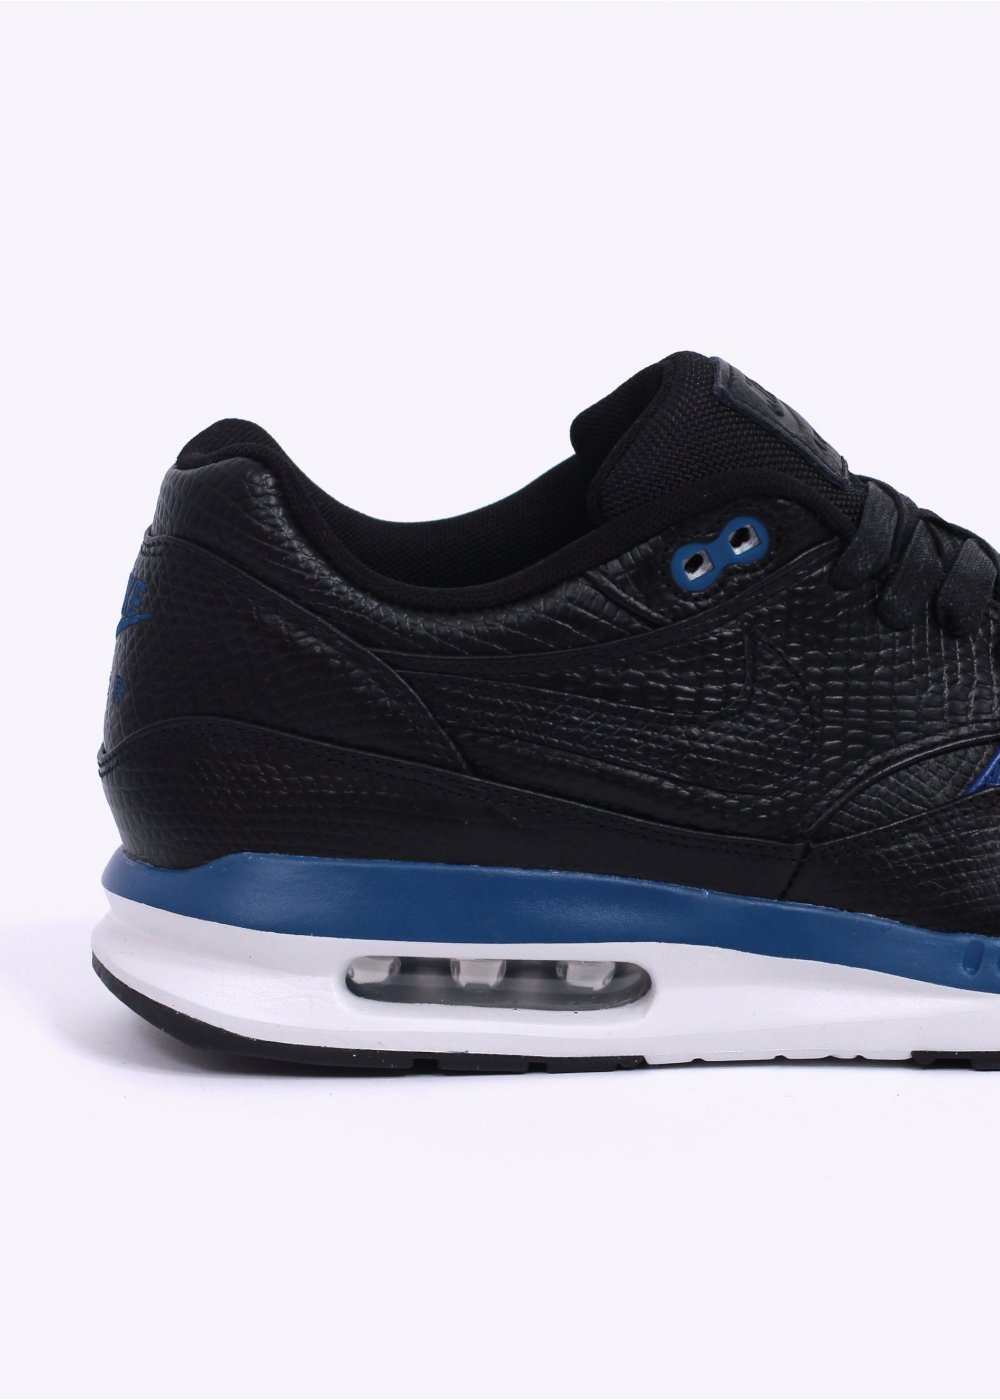 nike air max lunar 1 deluxe trainers black gym blue. Black Bedroom Furniture Sets. Home Design Ideas